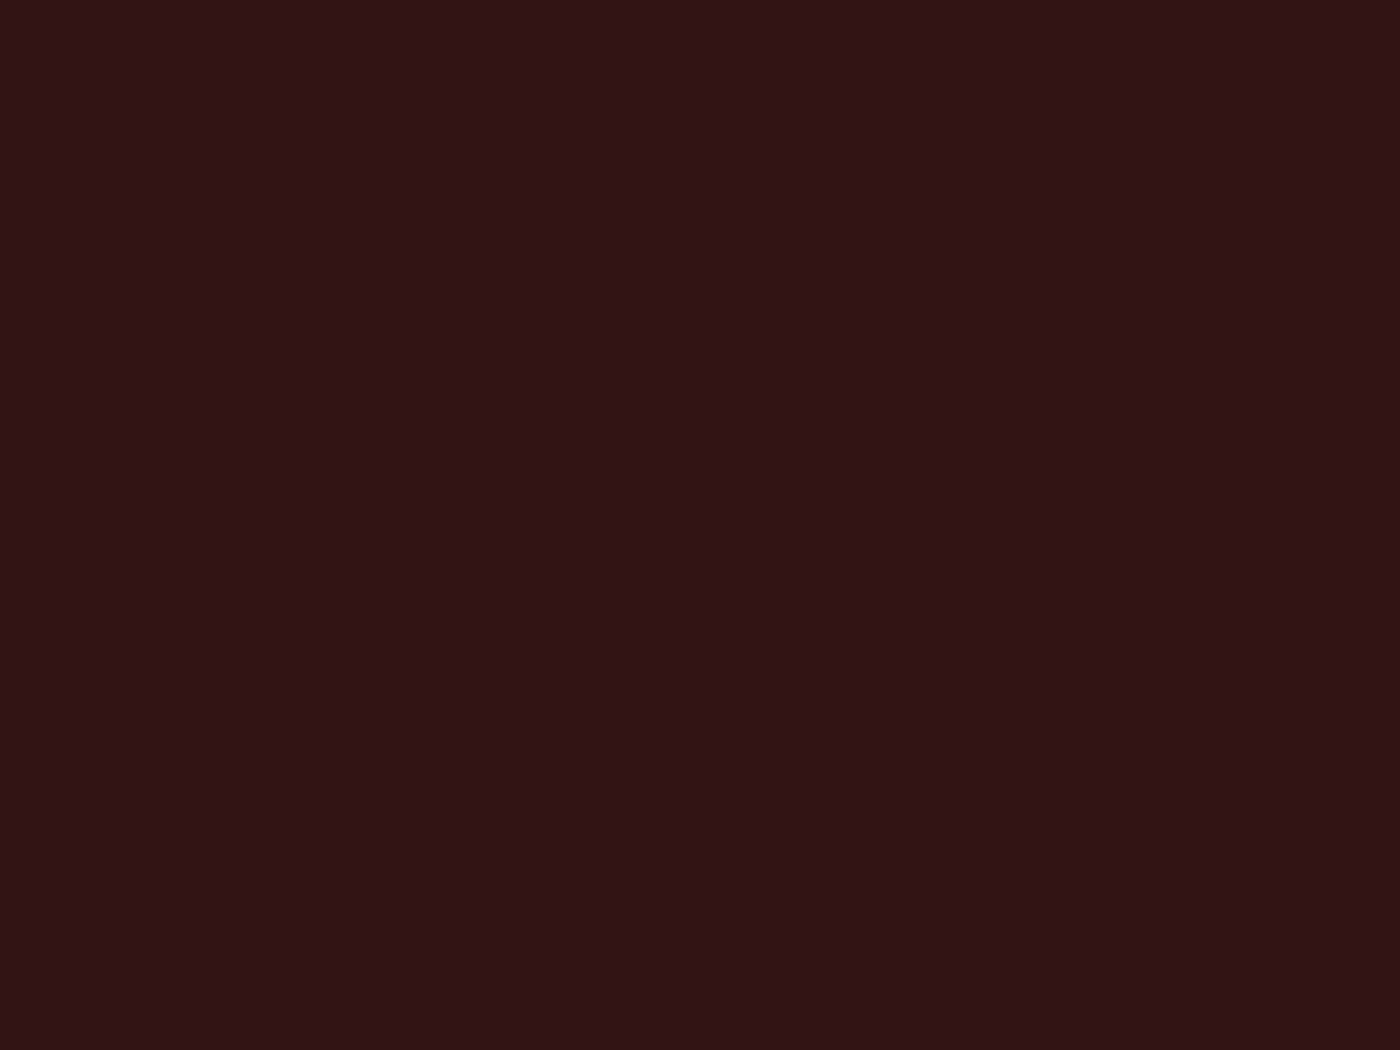 1400x1050 Seal Brown Solid Color Background